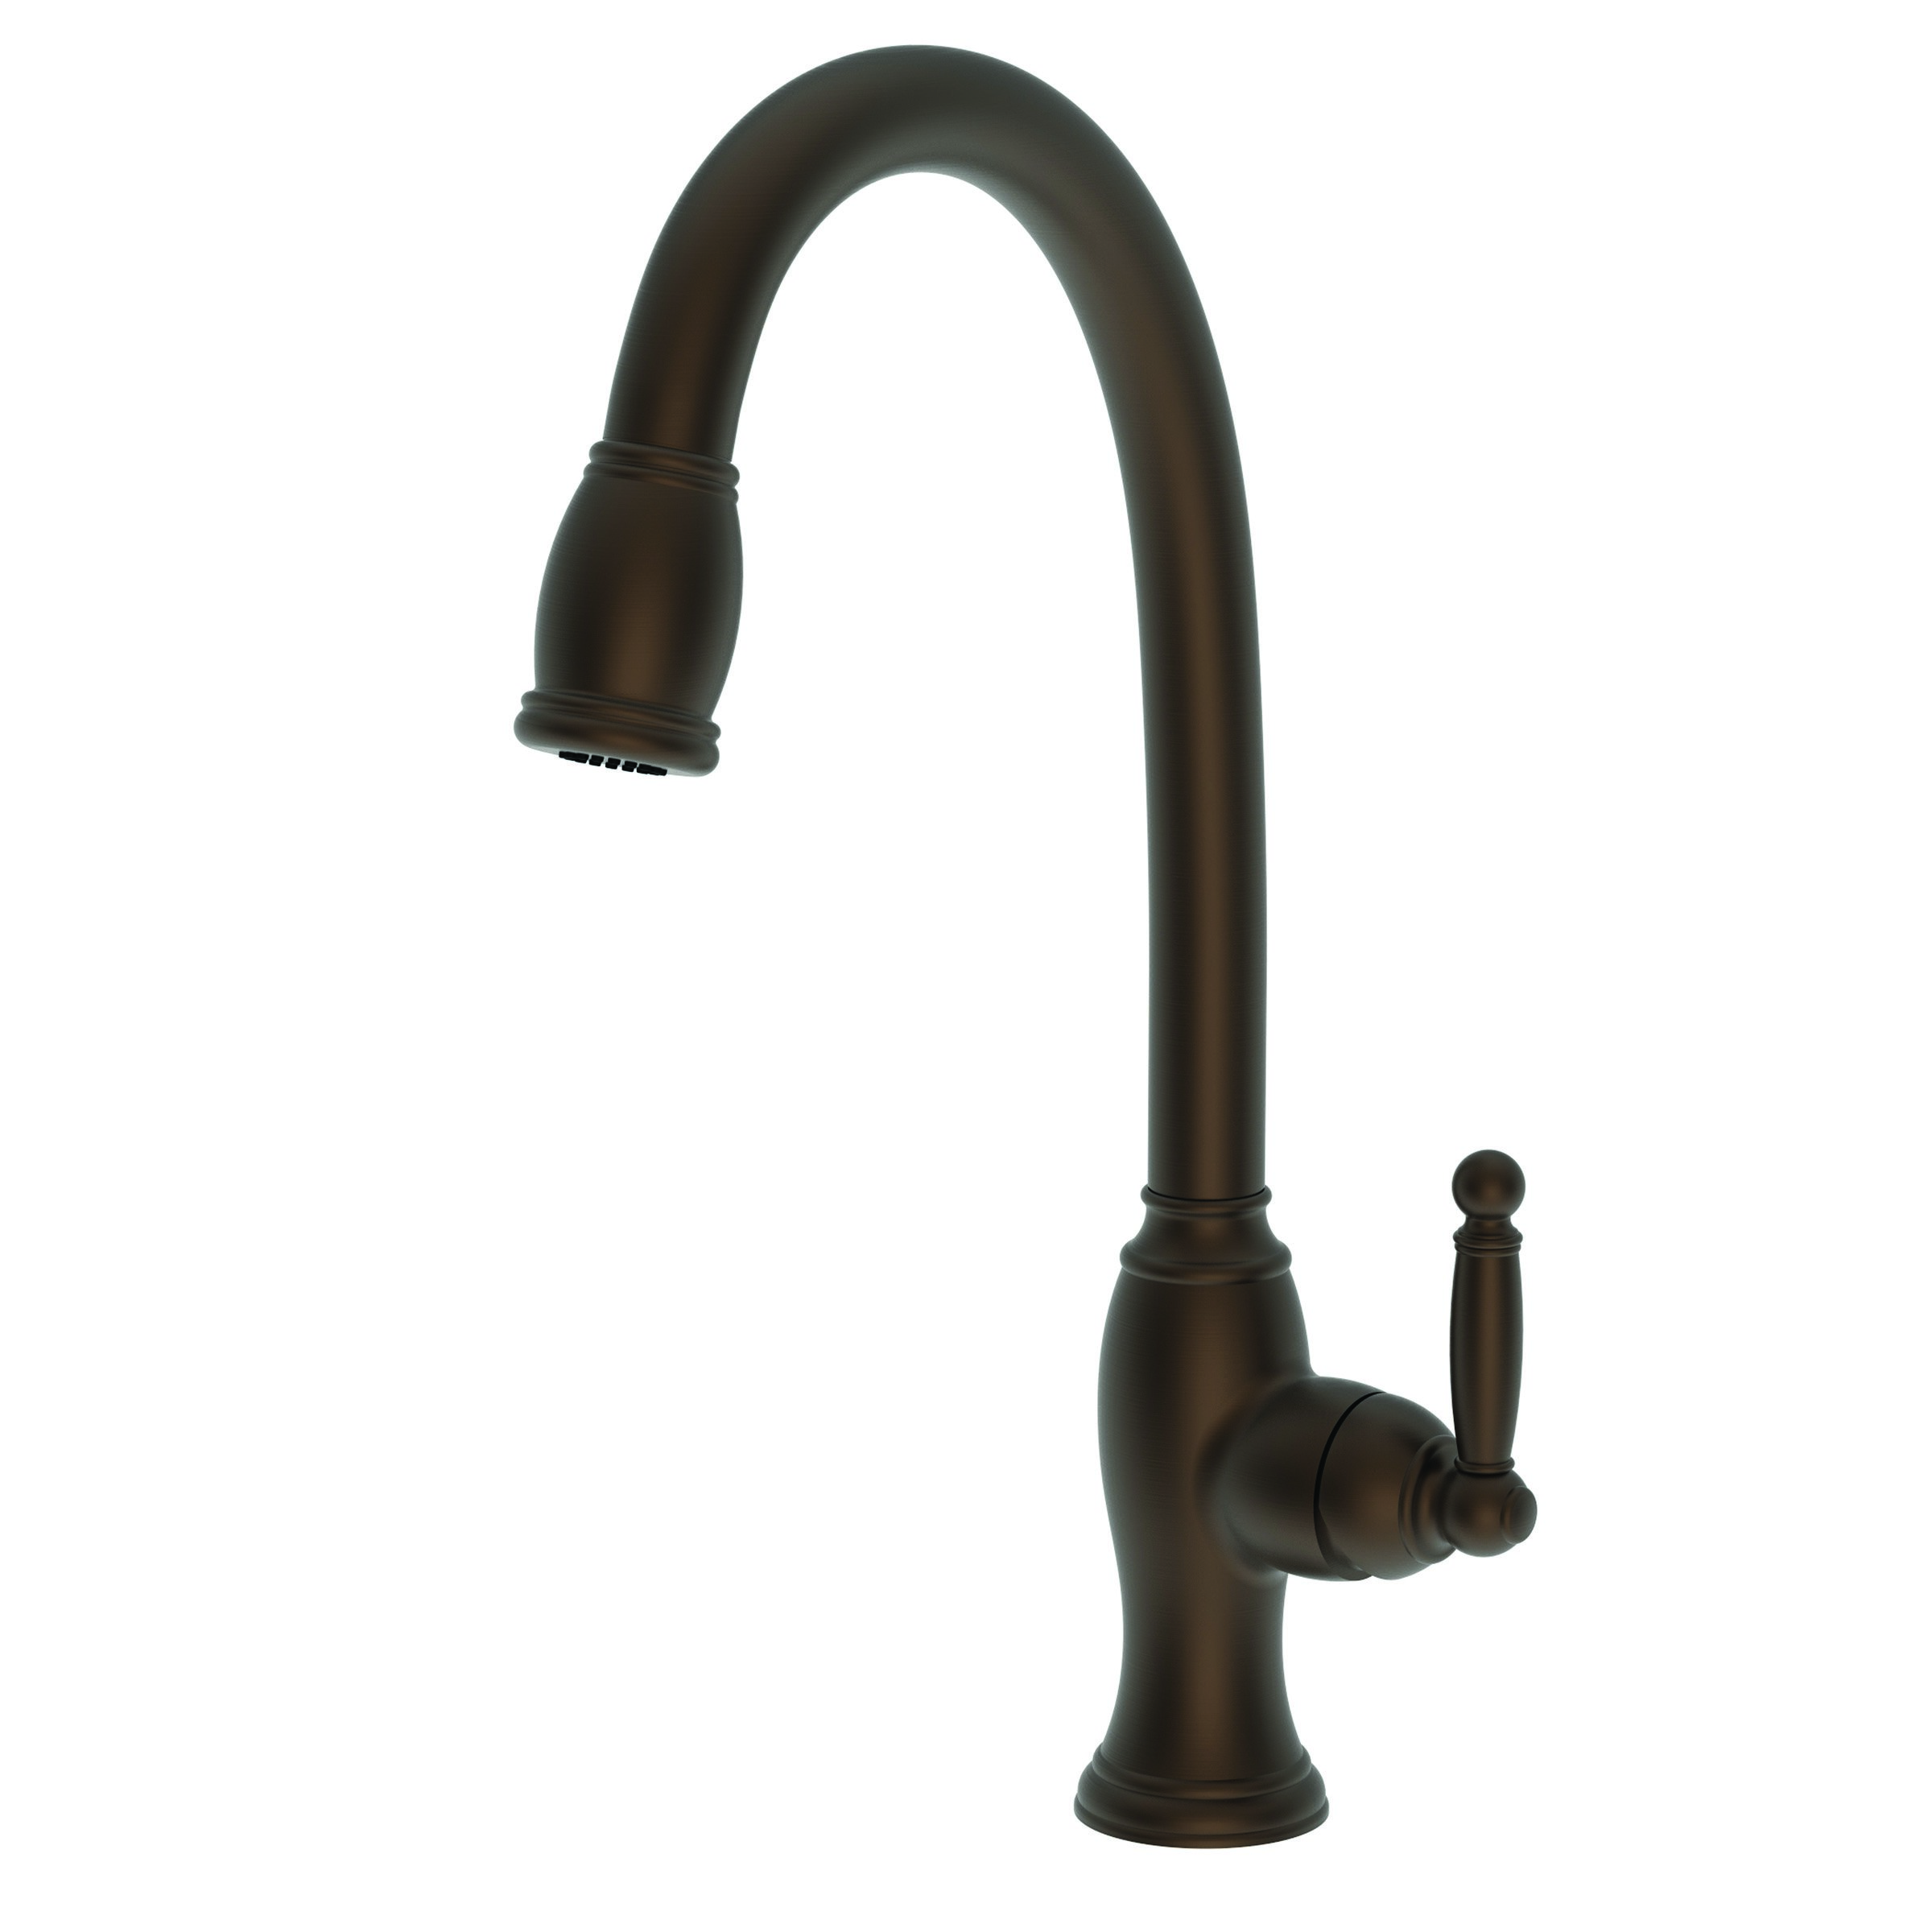 Newport Brass 2510-5103 Pull-down Kitchen Faucet